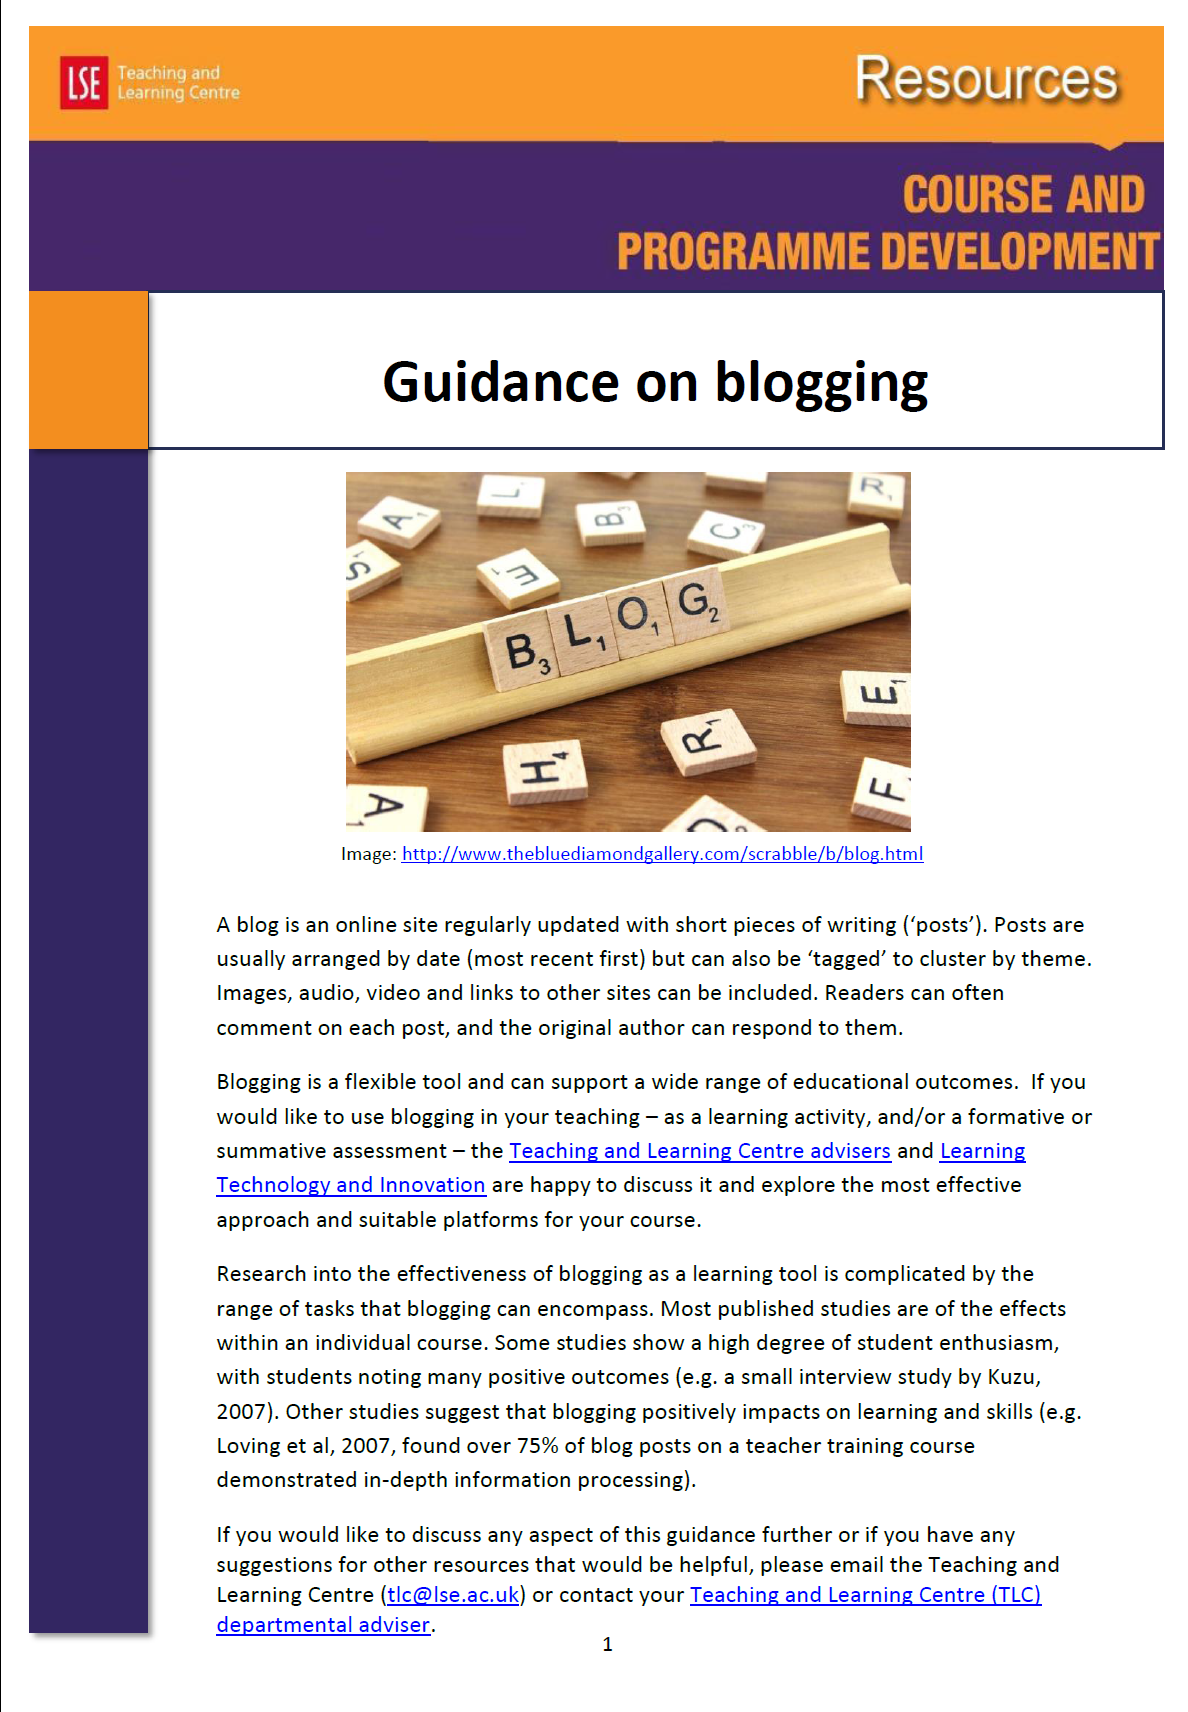 Guidance on blogging Cover image